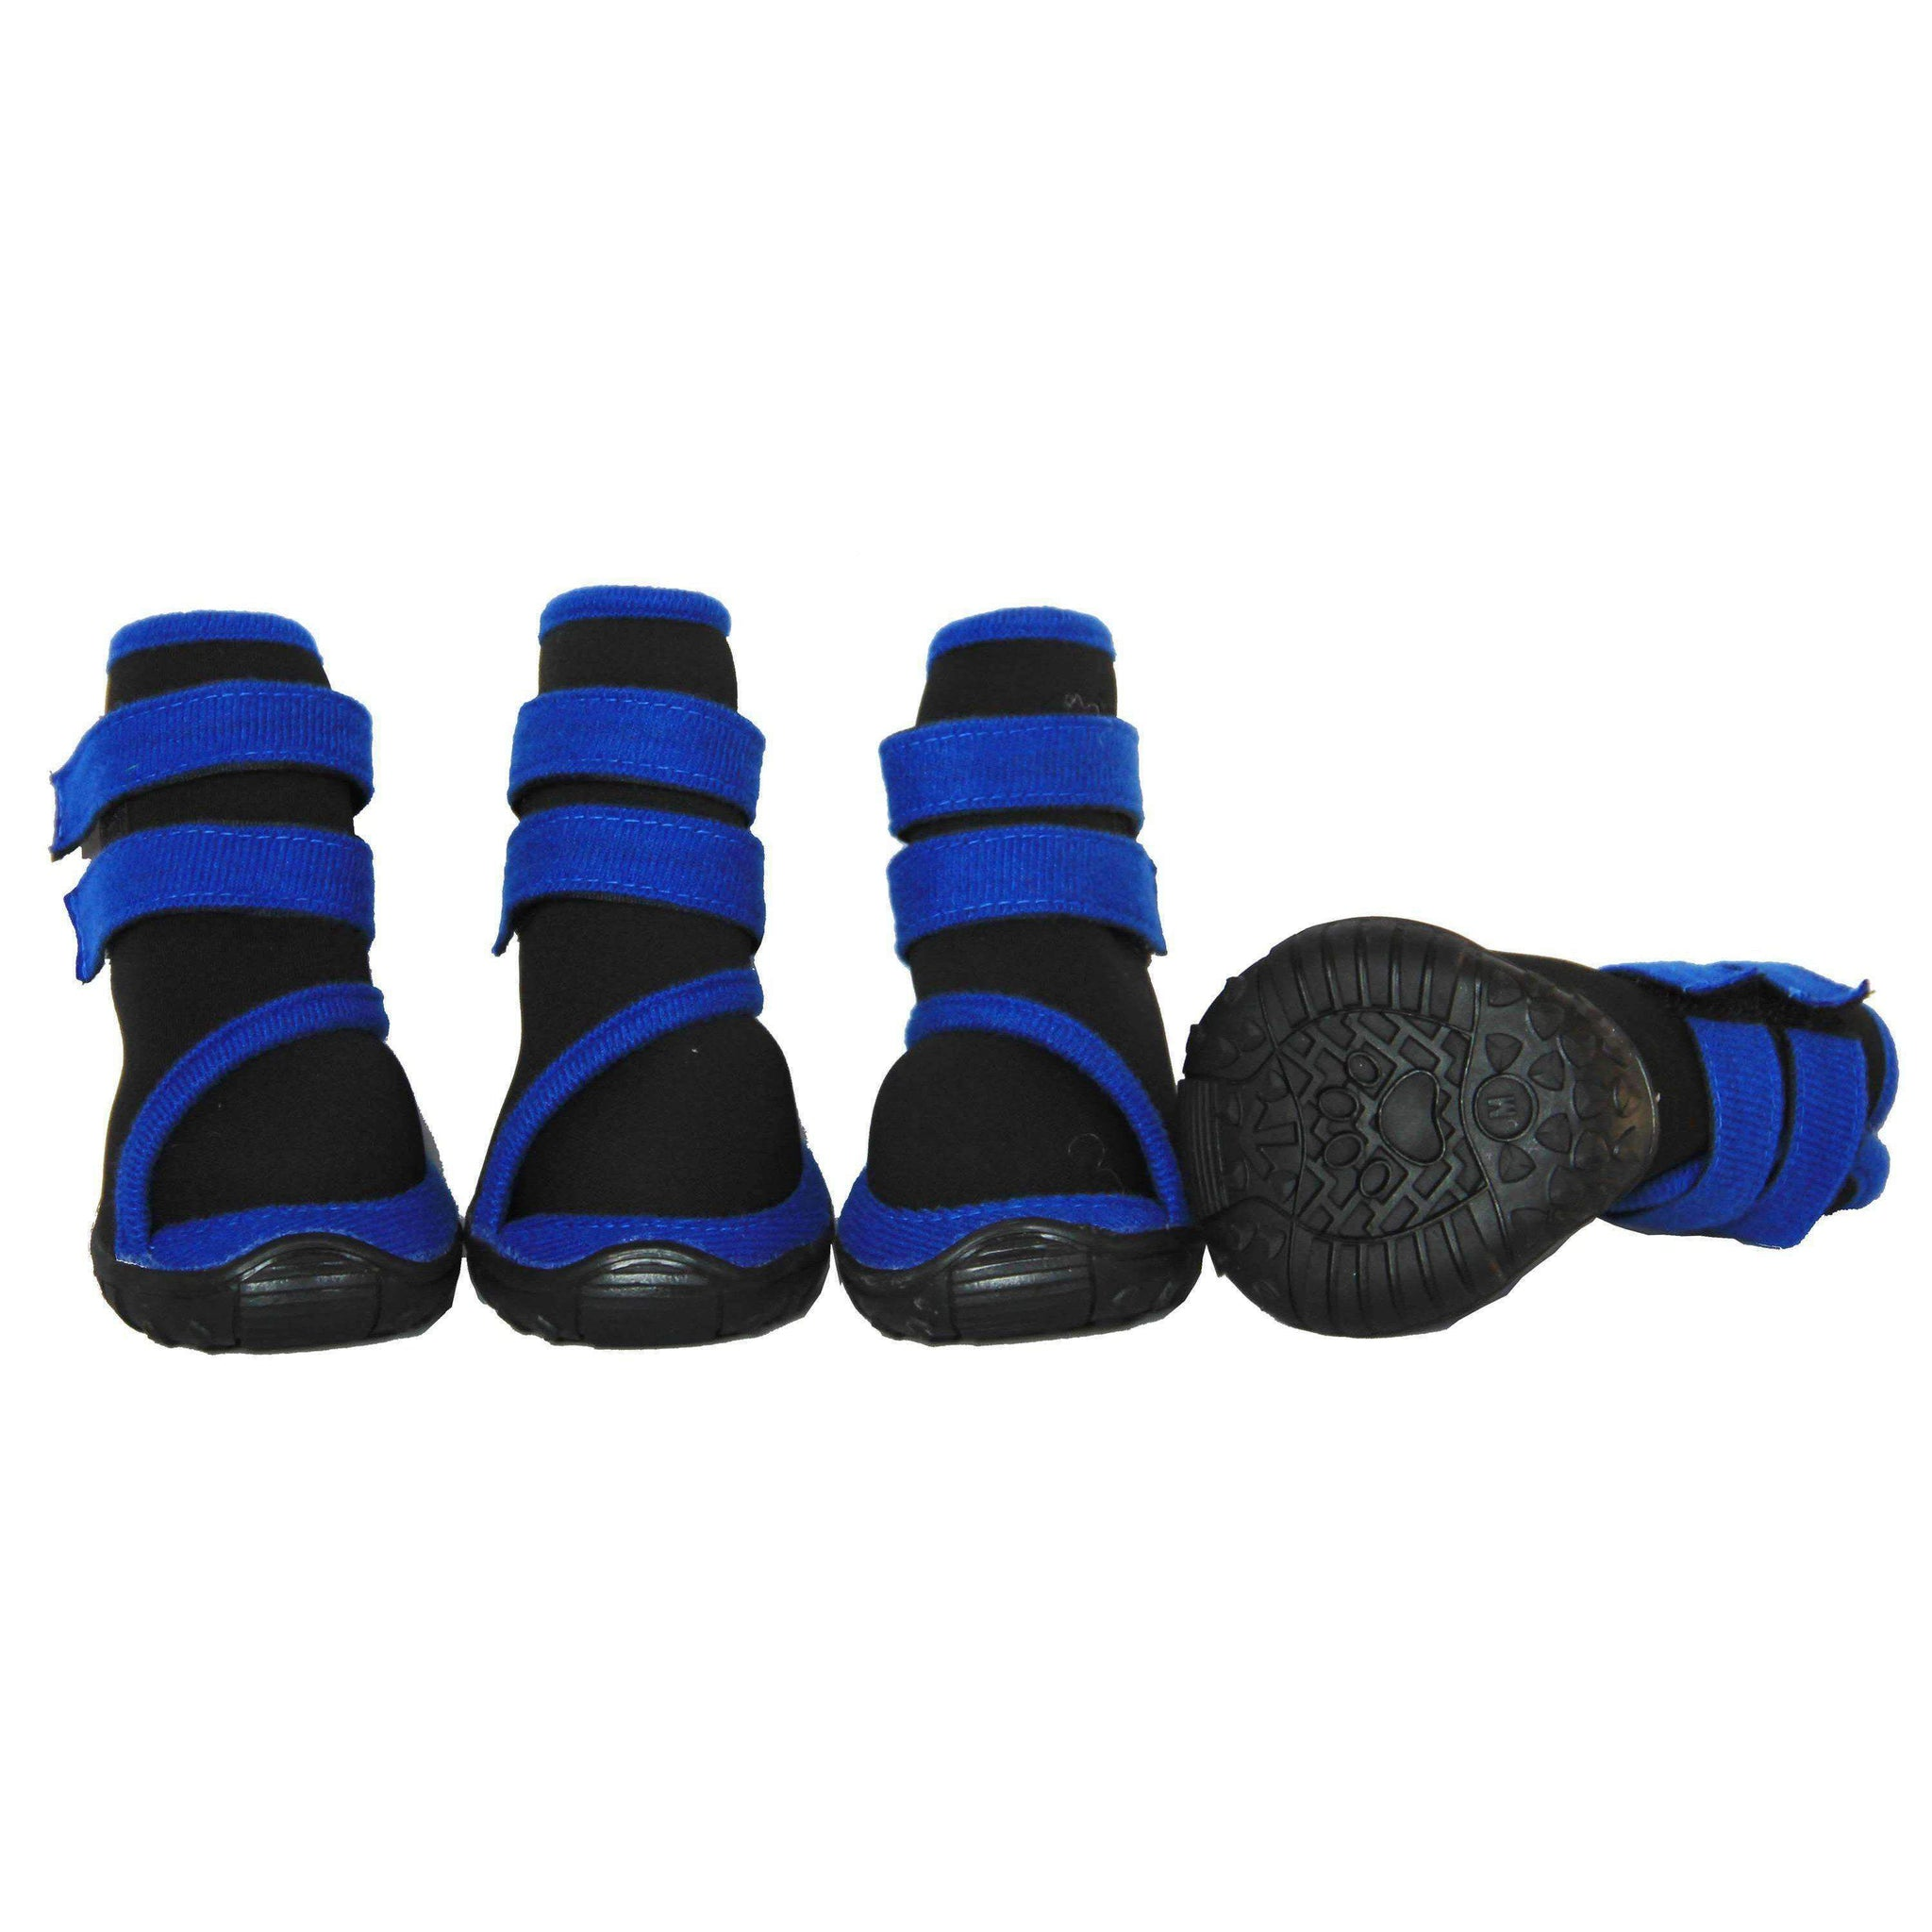 Performance Premium Stretch Supportive Pet Shoes - Set Of 4 - Black/Blue-Pet Life-DirtyFurClothing